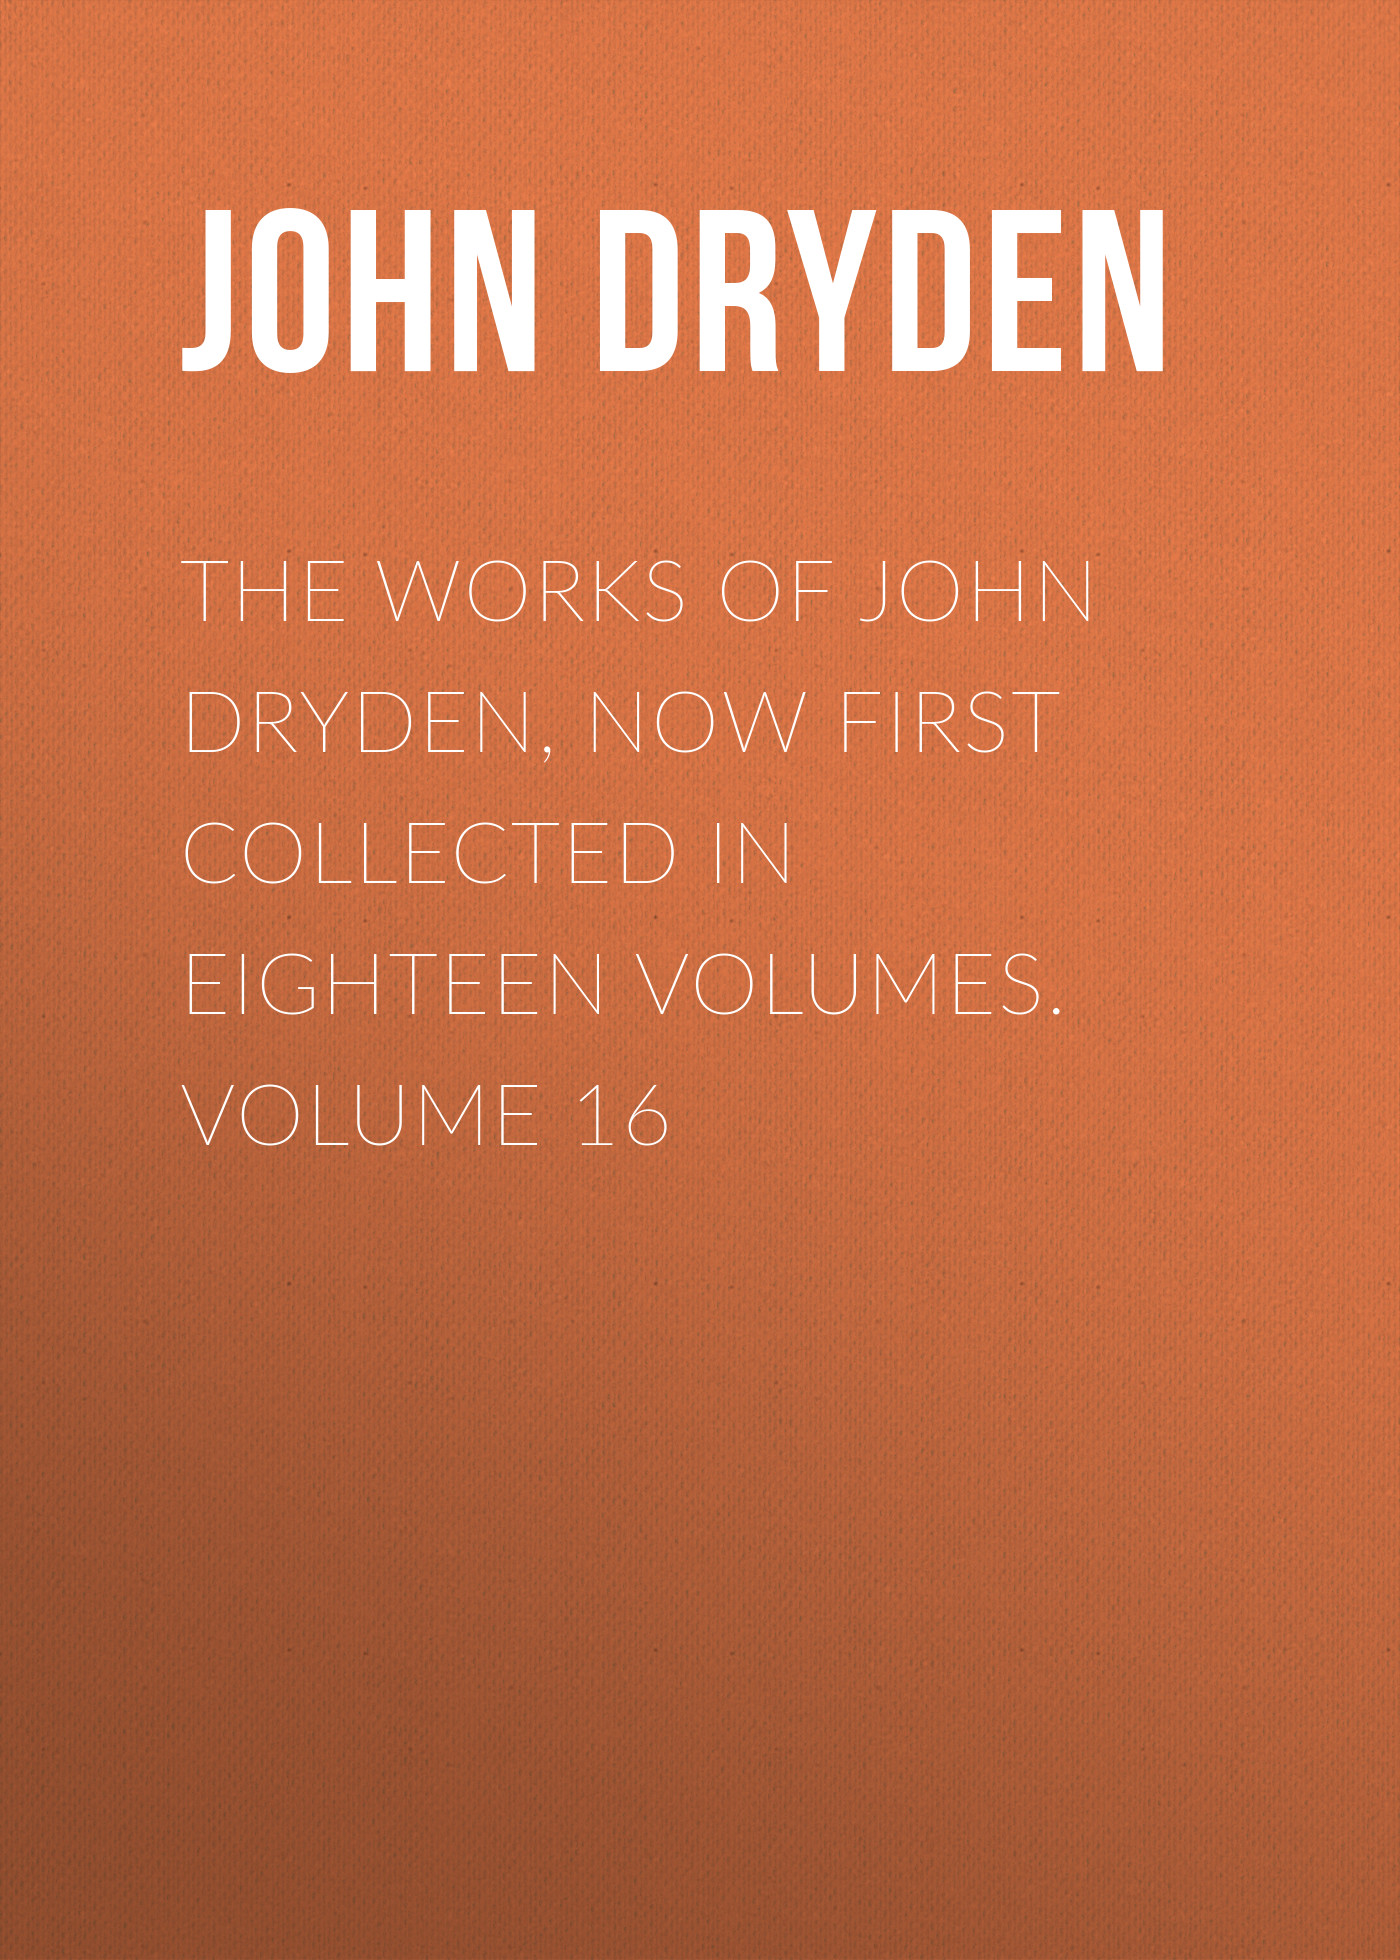 John Dryden The Works of John Dryden, now first collected in eighteen volumes. Volume 16 ruskin john 1819 1900 the poems of john ruskin now first collected from original manuscript and printed sources volume 2